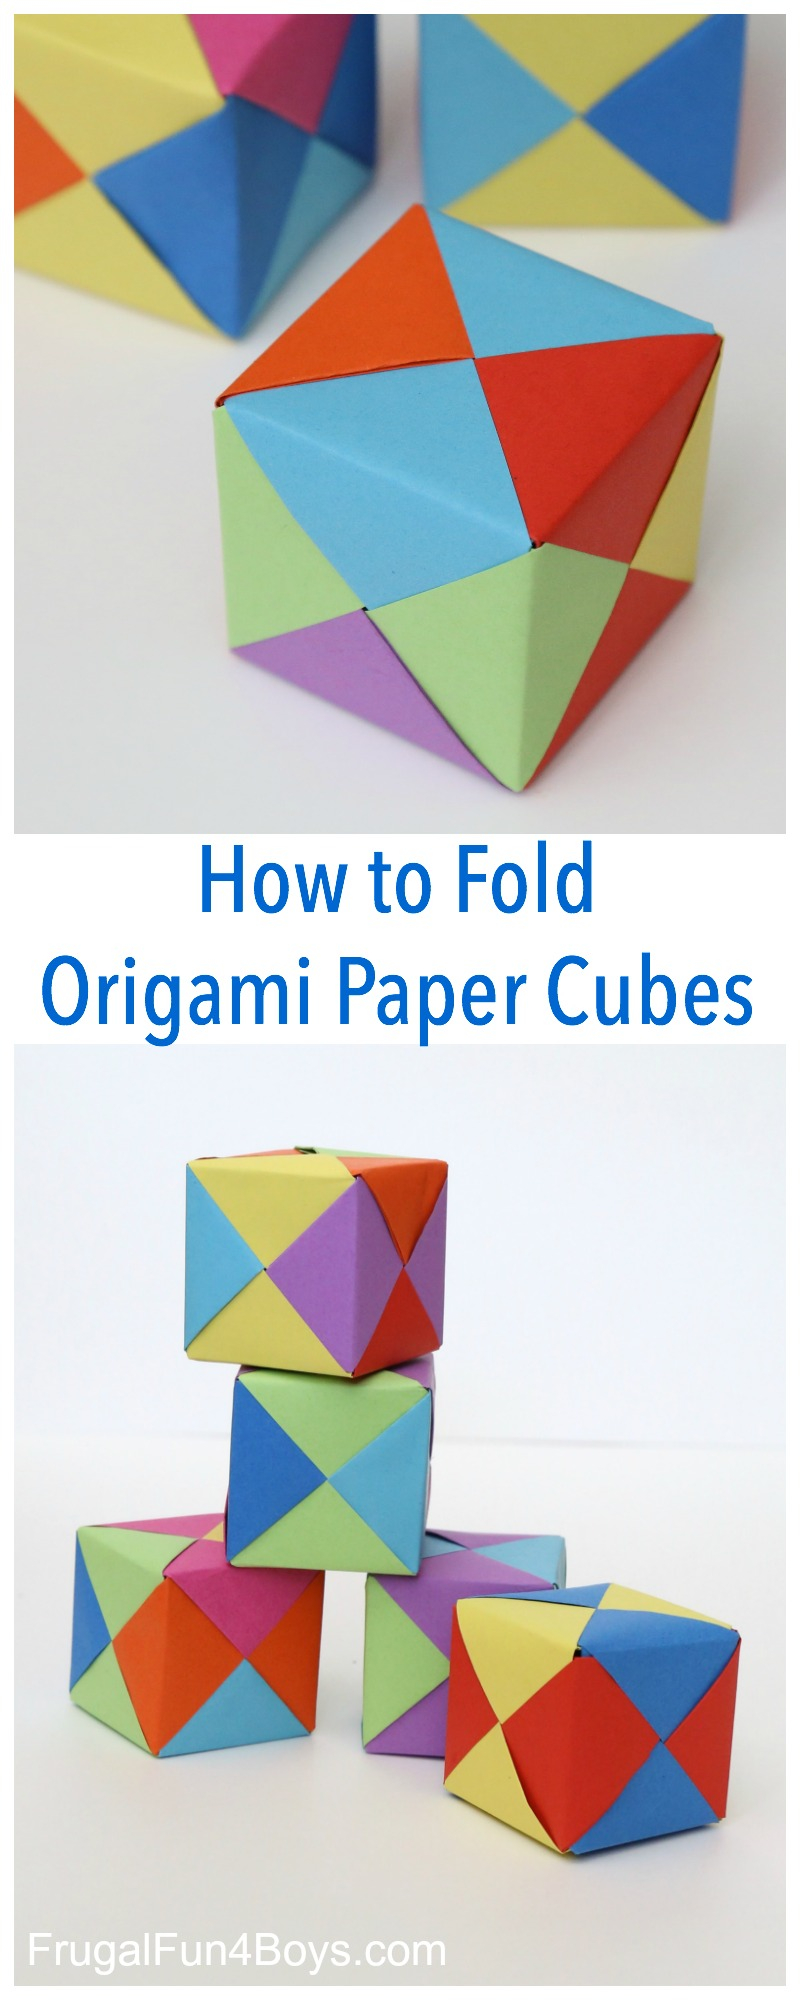 Origami Paper Images How To Fold Origami Paper Cubes Frugal Fun For Boys And Girls